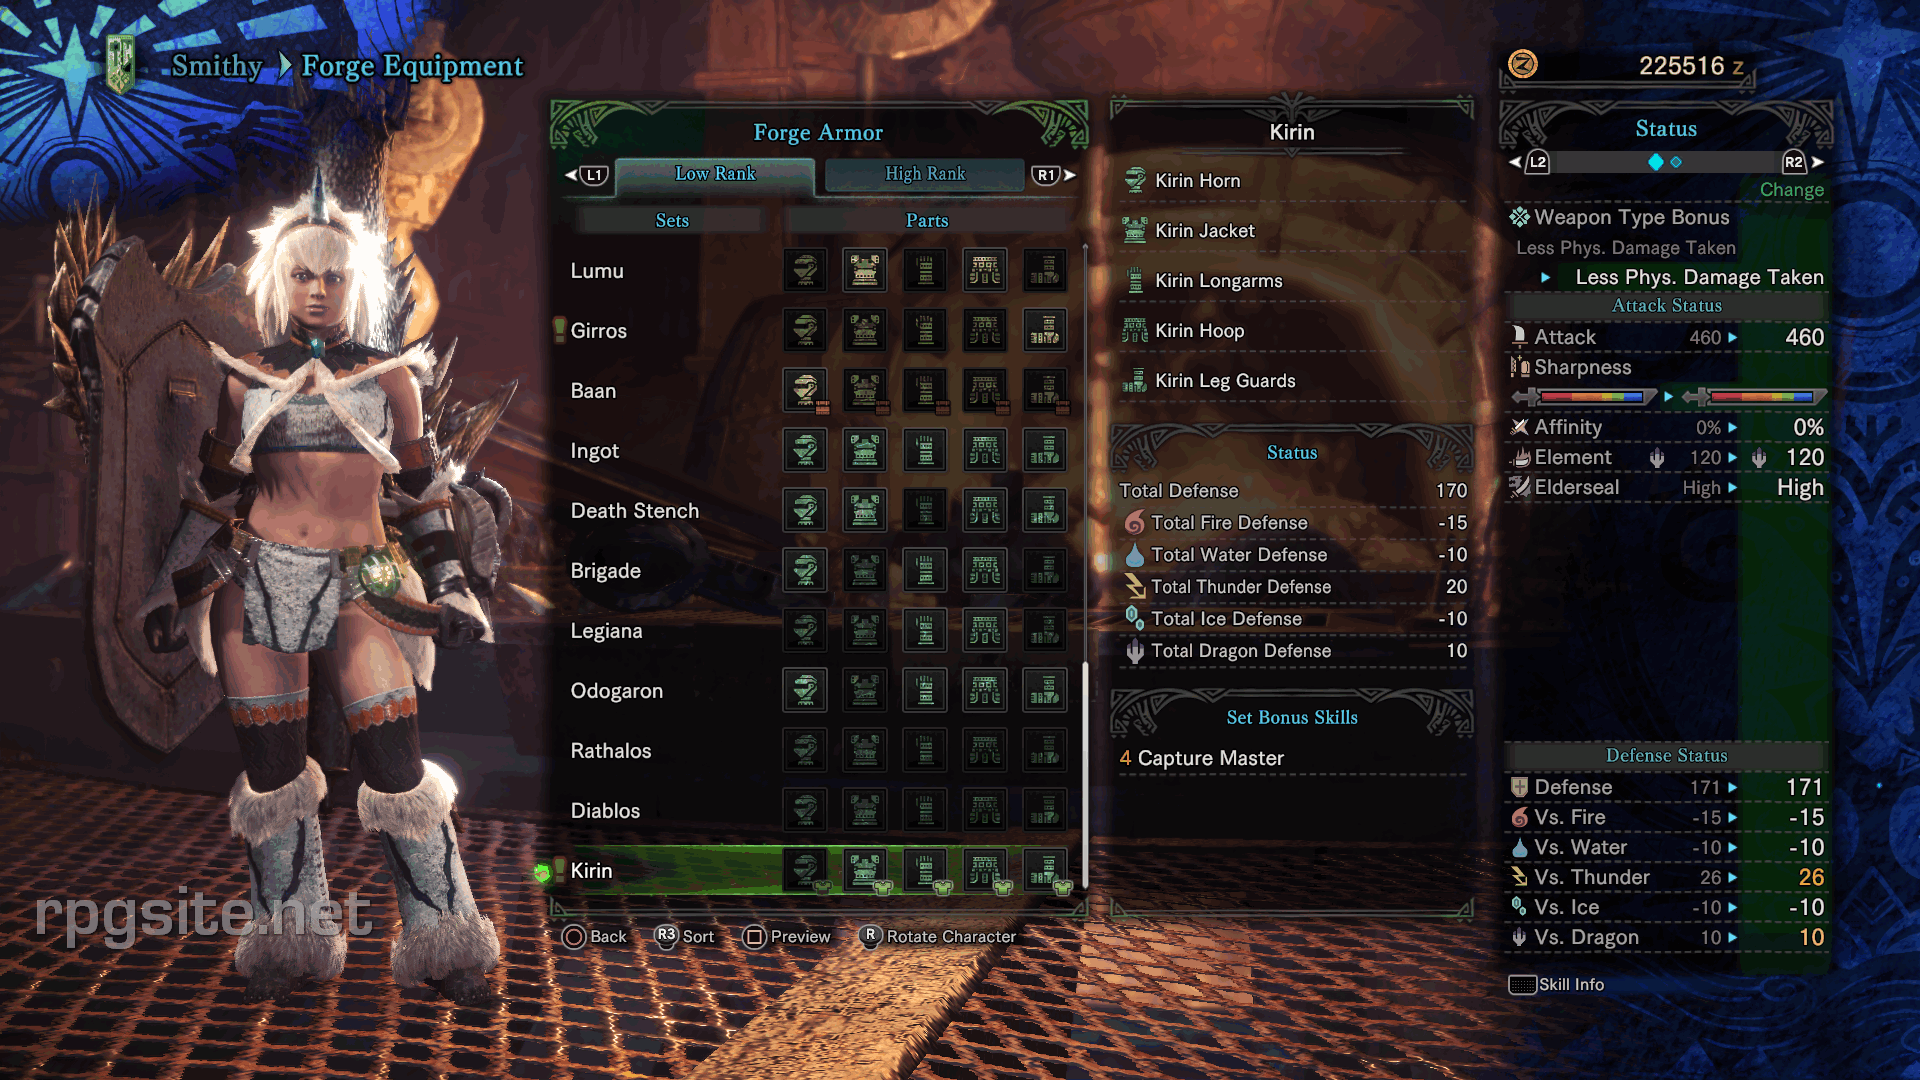 Monster Hunter World Female Armor Sets All Low Rank Female Armor